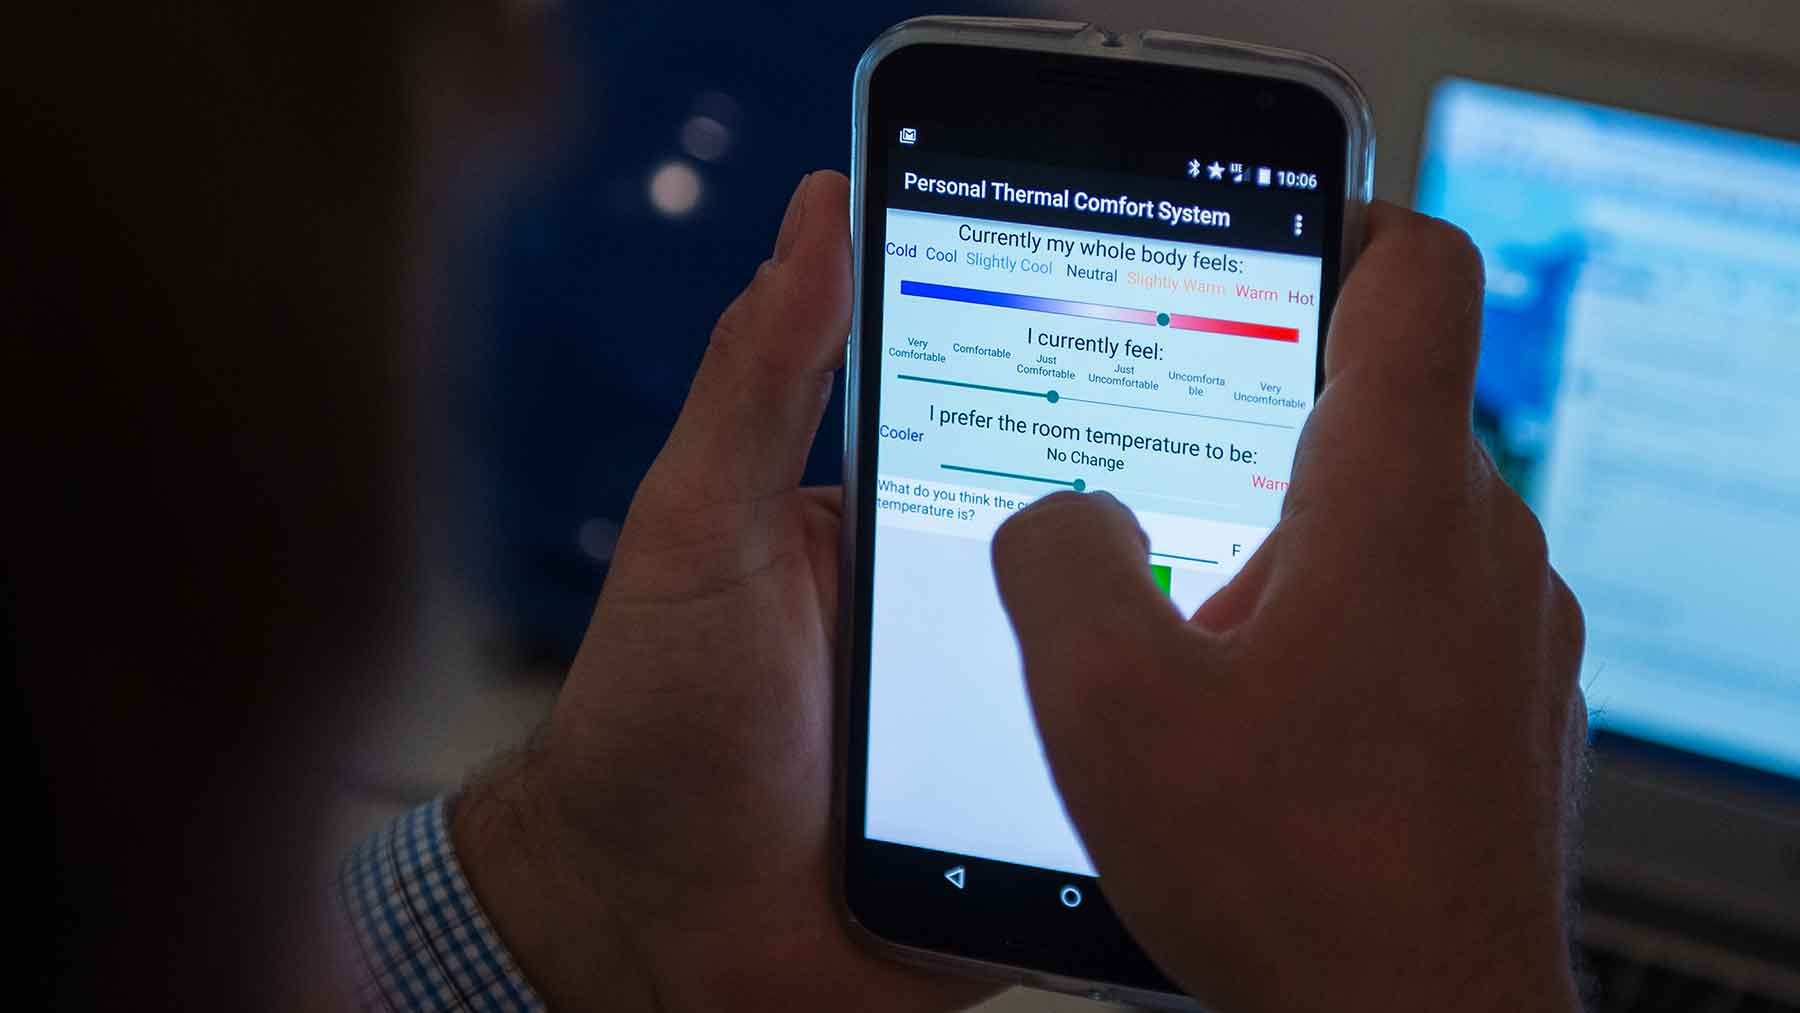 Photo shows a man using a smartphone app to register his comfort level.